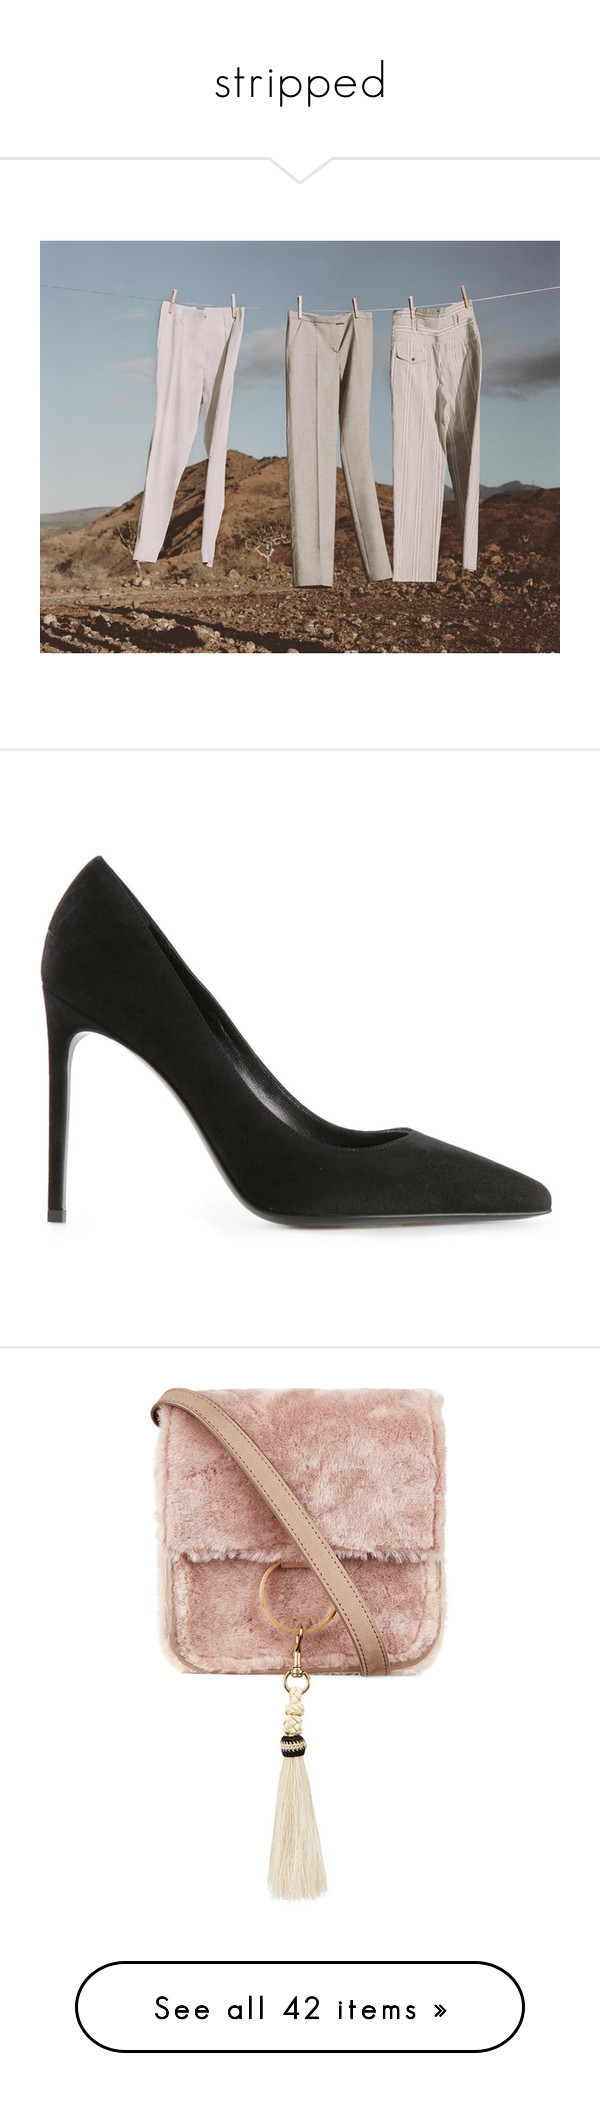 """""""stripped"""" by outfitx ❤ liked on Polyvore featuring pictures, shoes, pumps, store, black, high heel stilettos, pointy toe pumps, black leather shoes, black pointy toe pumps and pointed toe stilettos"""